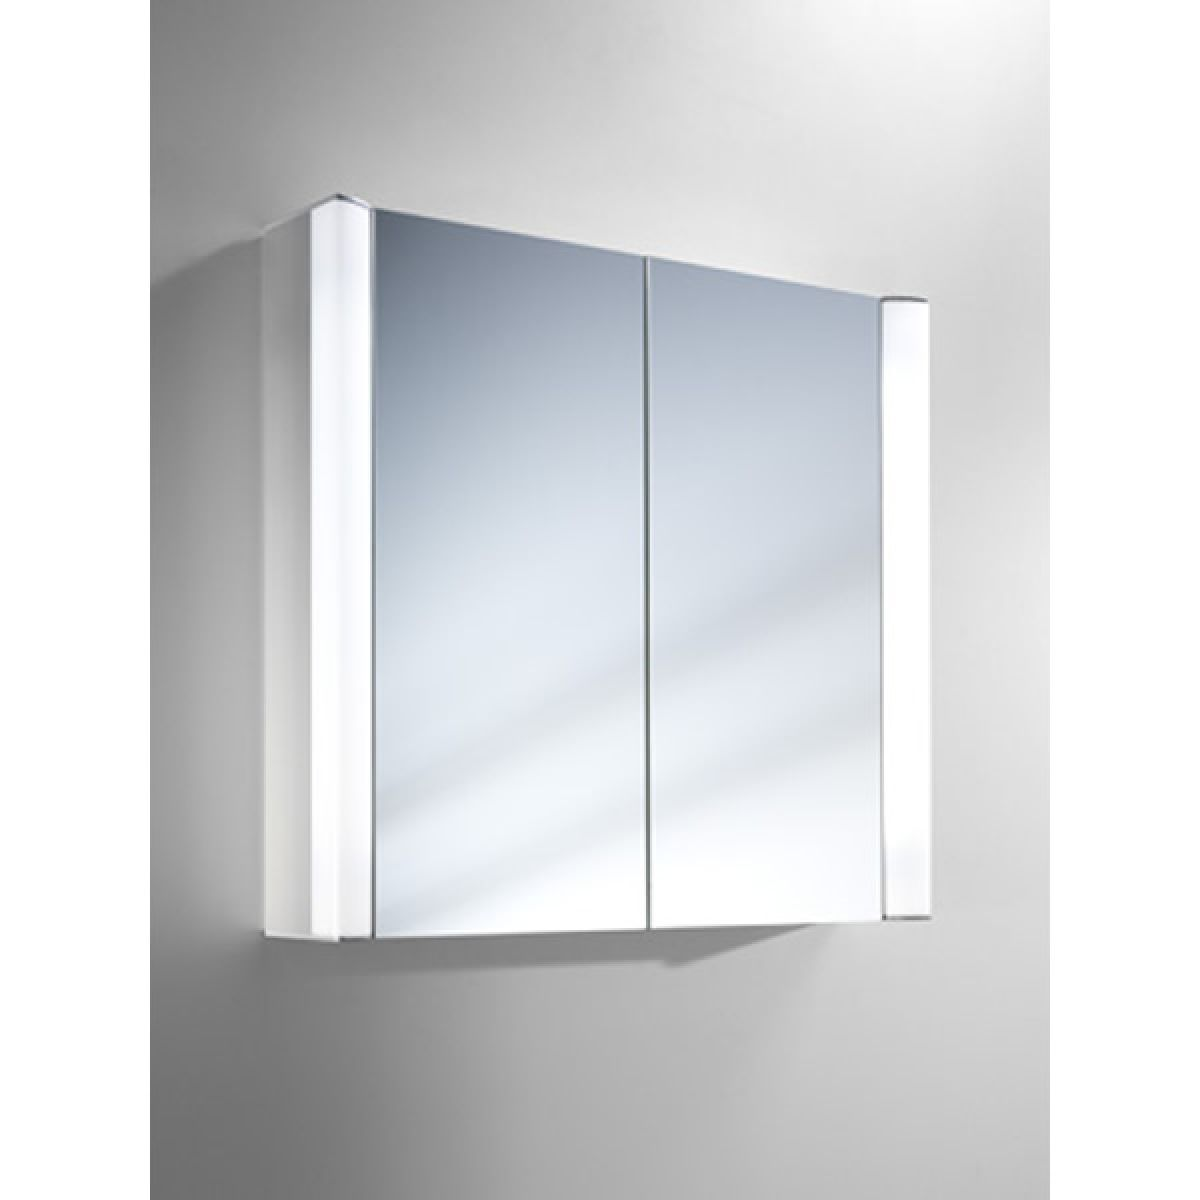 Schneider Moanaline Illuminated Bathroom Cabinet Uk Bathrooms